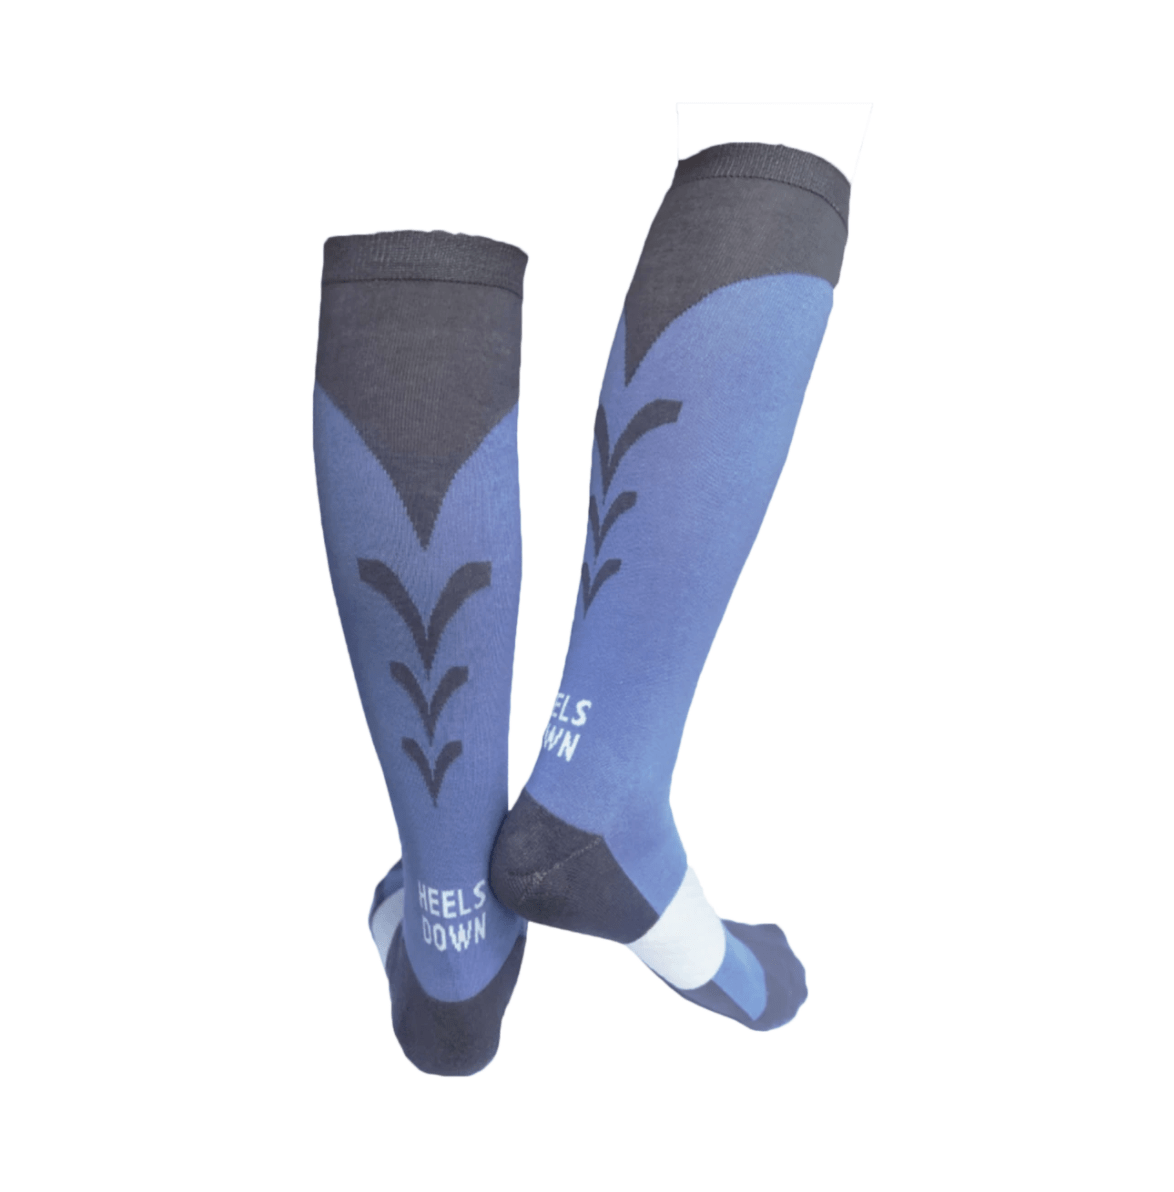 C4 Belts Socks C4 Riding Socks -Periwinkle/Grey equestrian team apparel online tack store mobile tack store custom farm apparel custom show stable clothing equestrian lifestyle horse show clothing riding clothes horses equestrian tack store